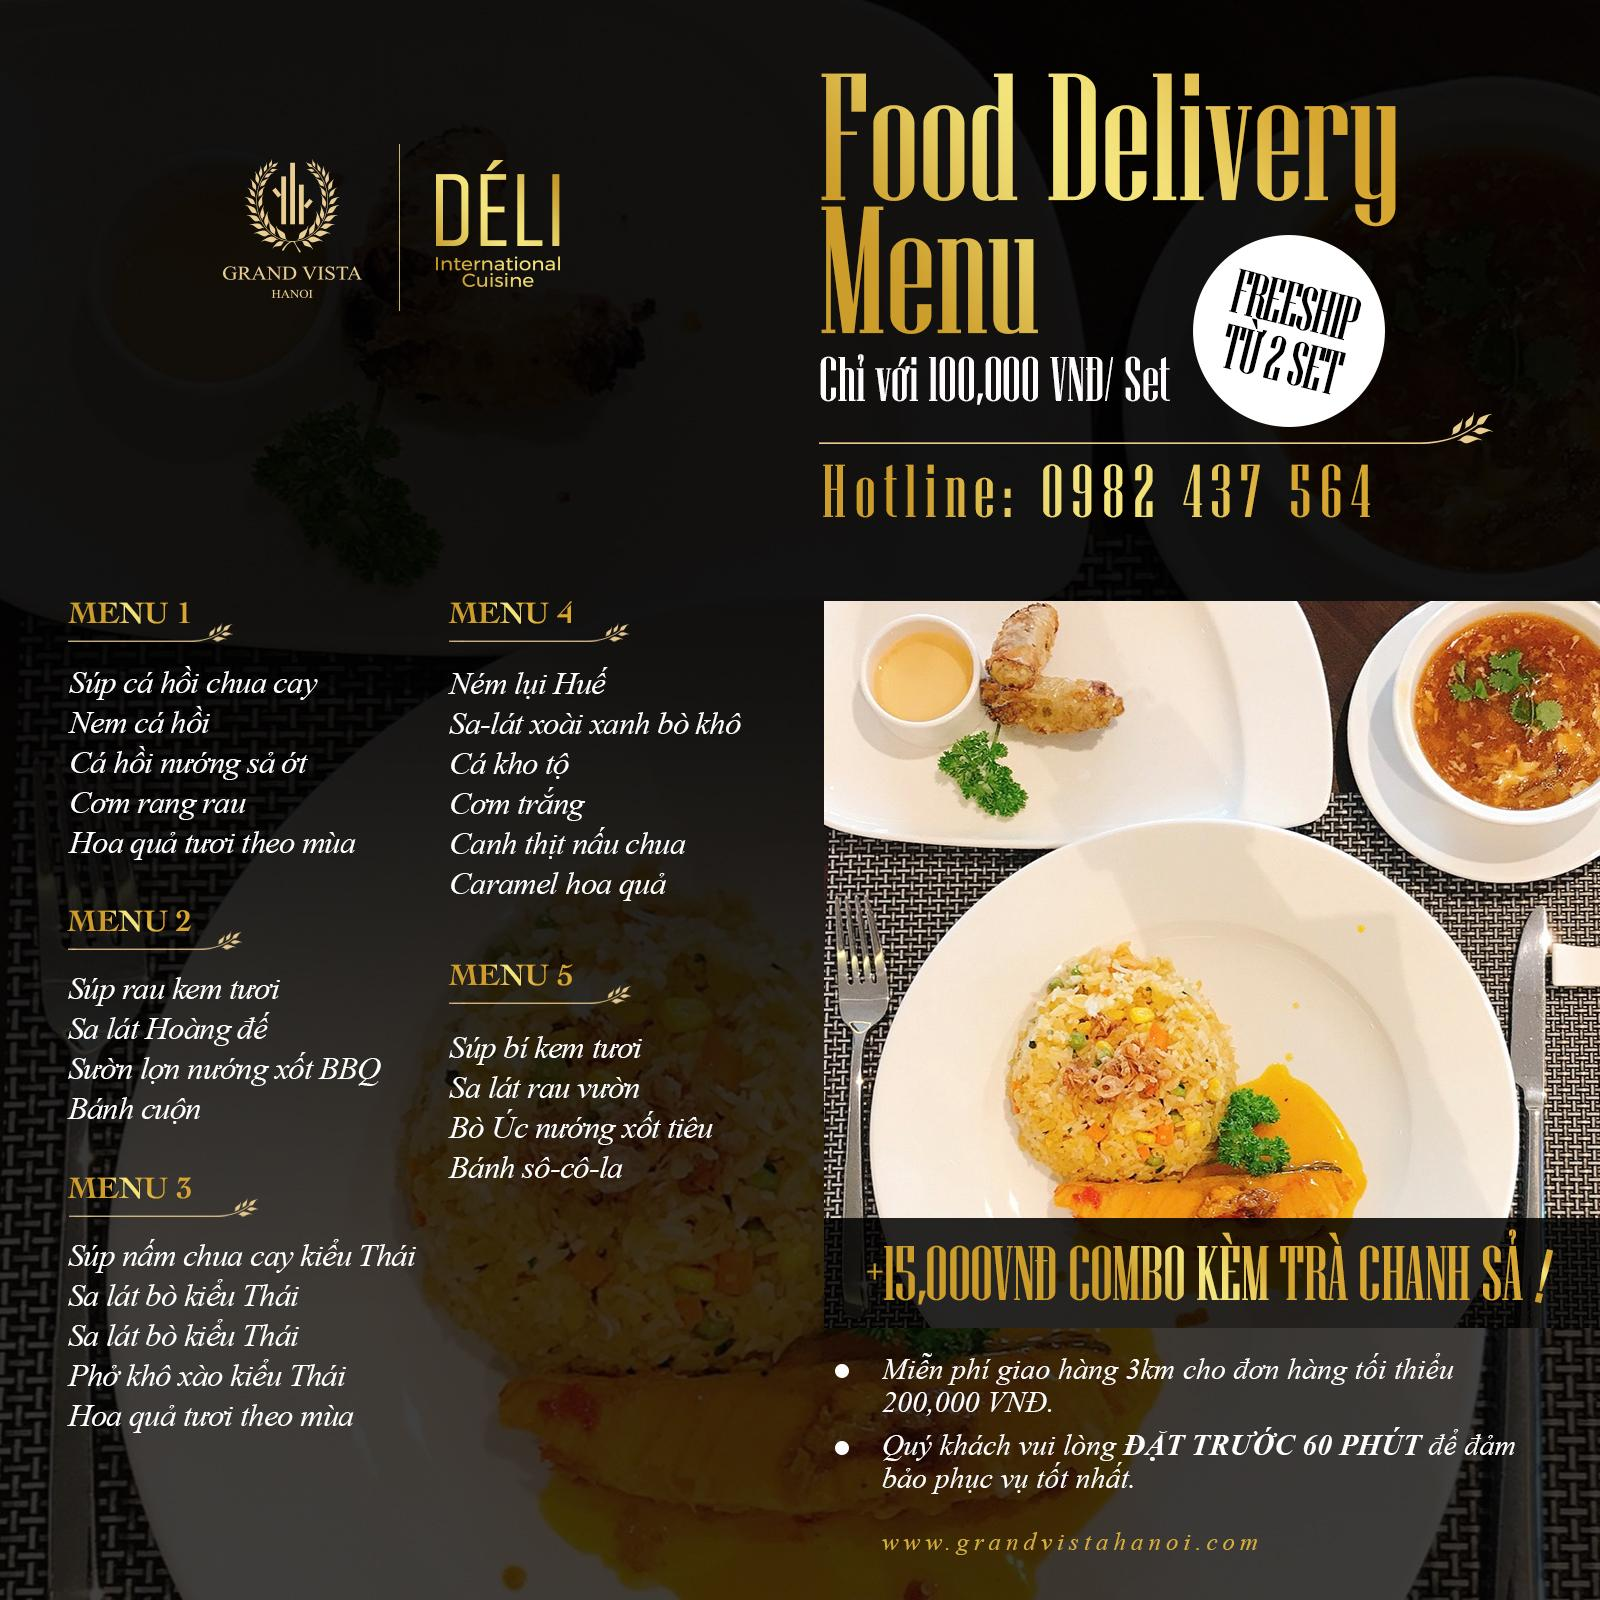 Food Delivery by Déli